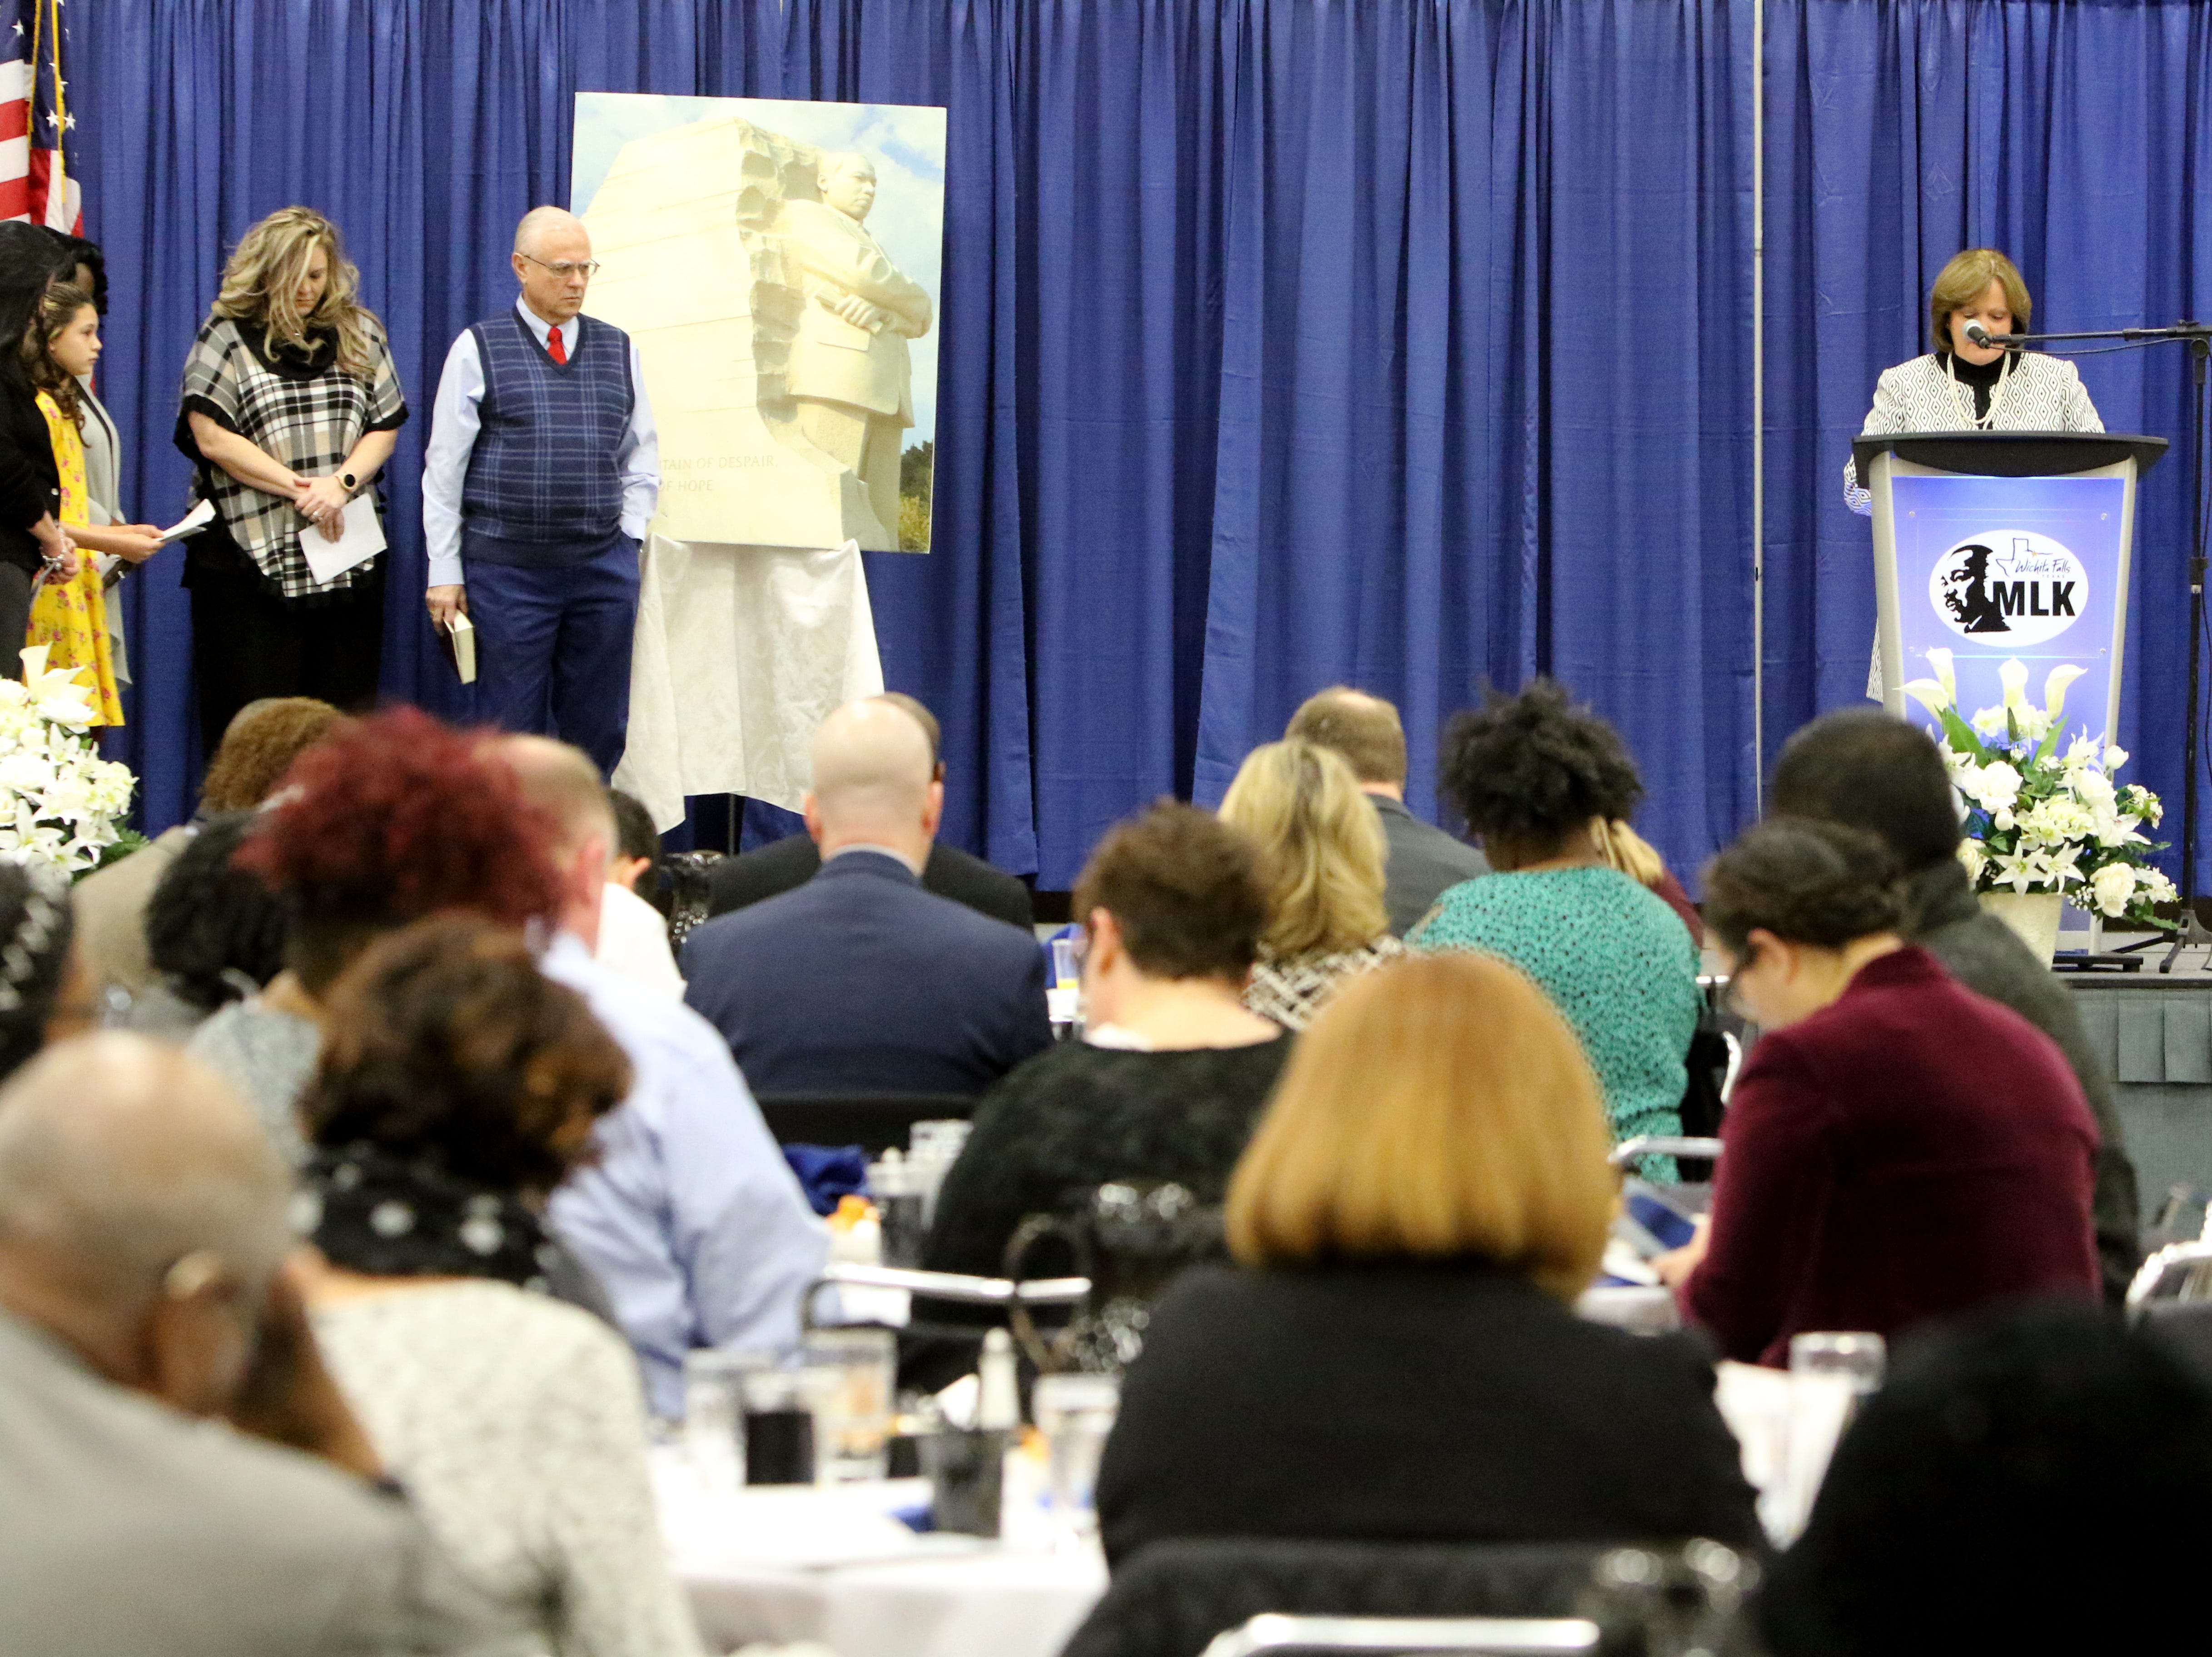 Leslie Schaffner gives the prayer for faith at the Dr. Martin Luther King, Jr. Scholarship and Prayer Breakfast Saturday, Jan. 19, 2019, at the Multi-Purpose Events Center.